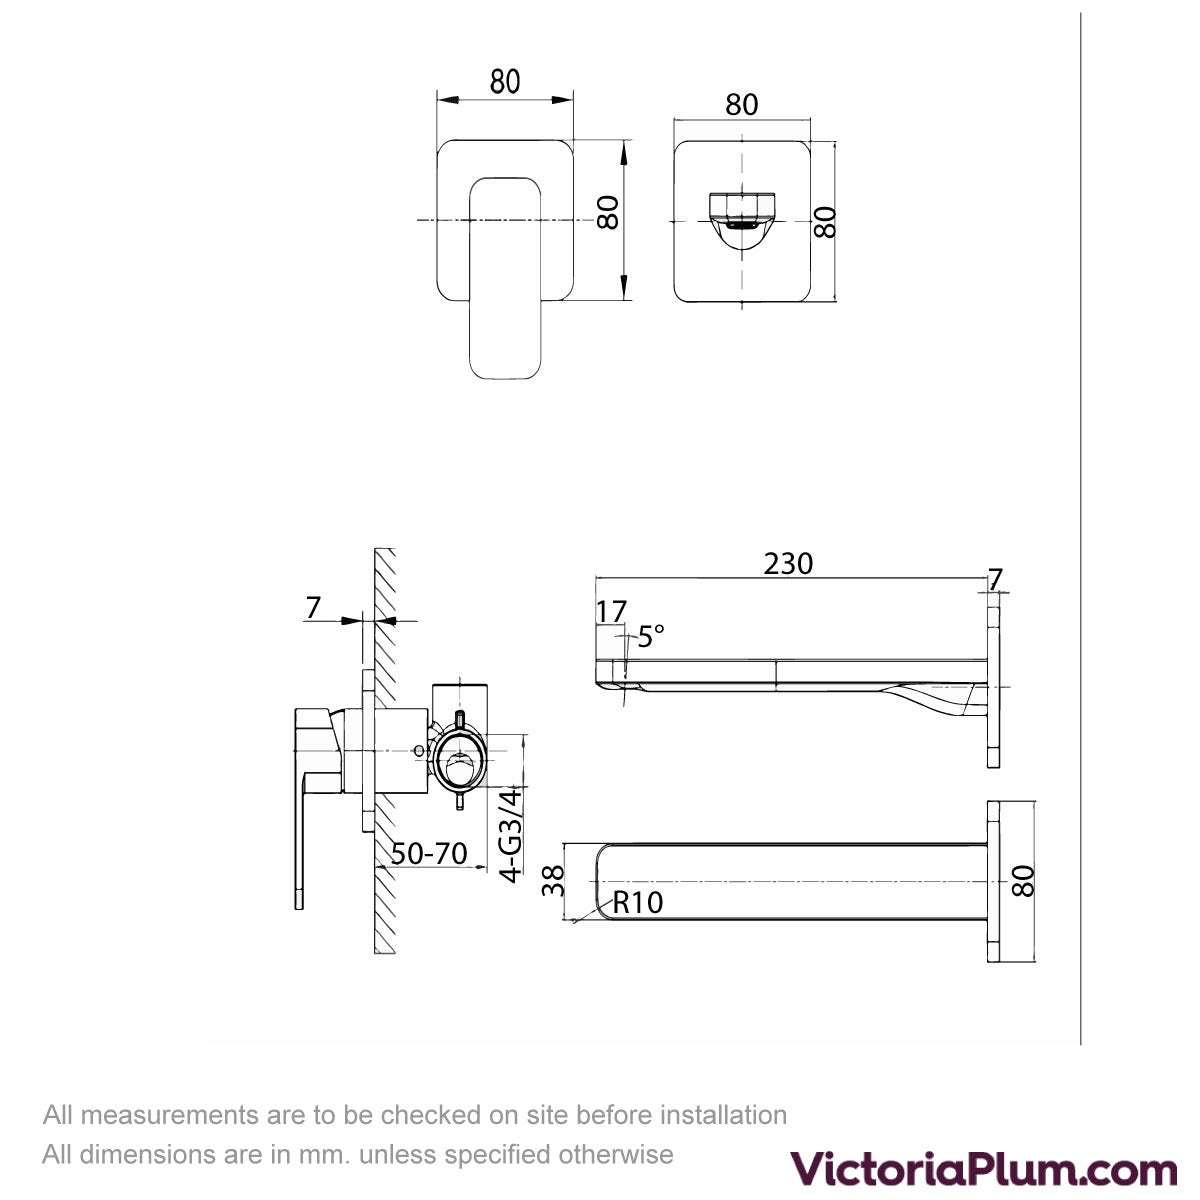 Dimensions for Mode Spencer square wall mounted gold bath mixer tap